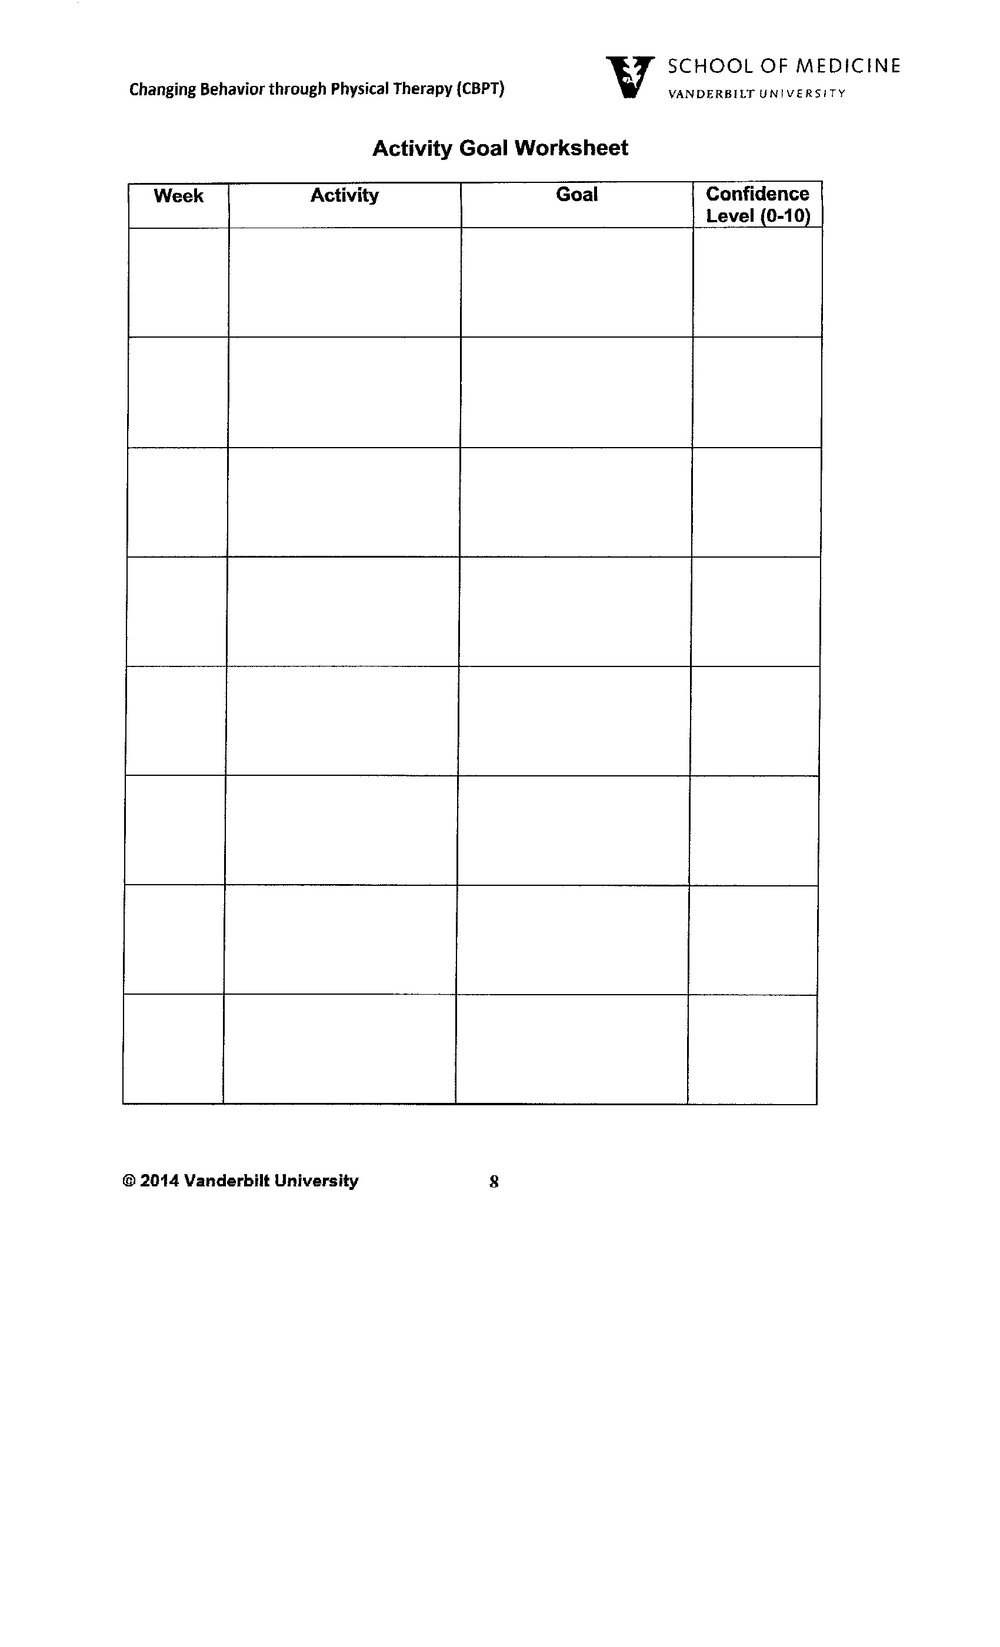 Activity Goal Worksheet 001.jpg